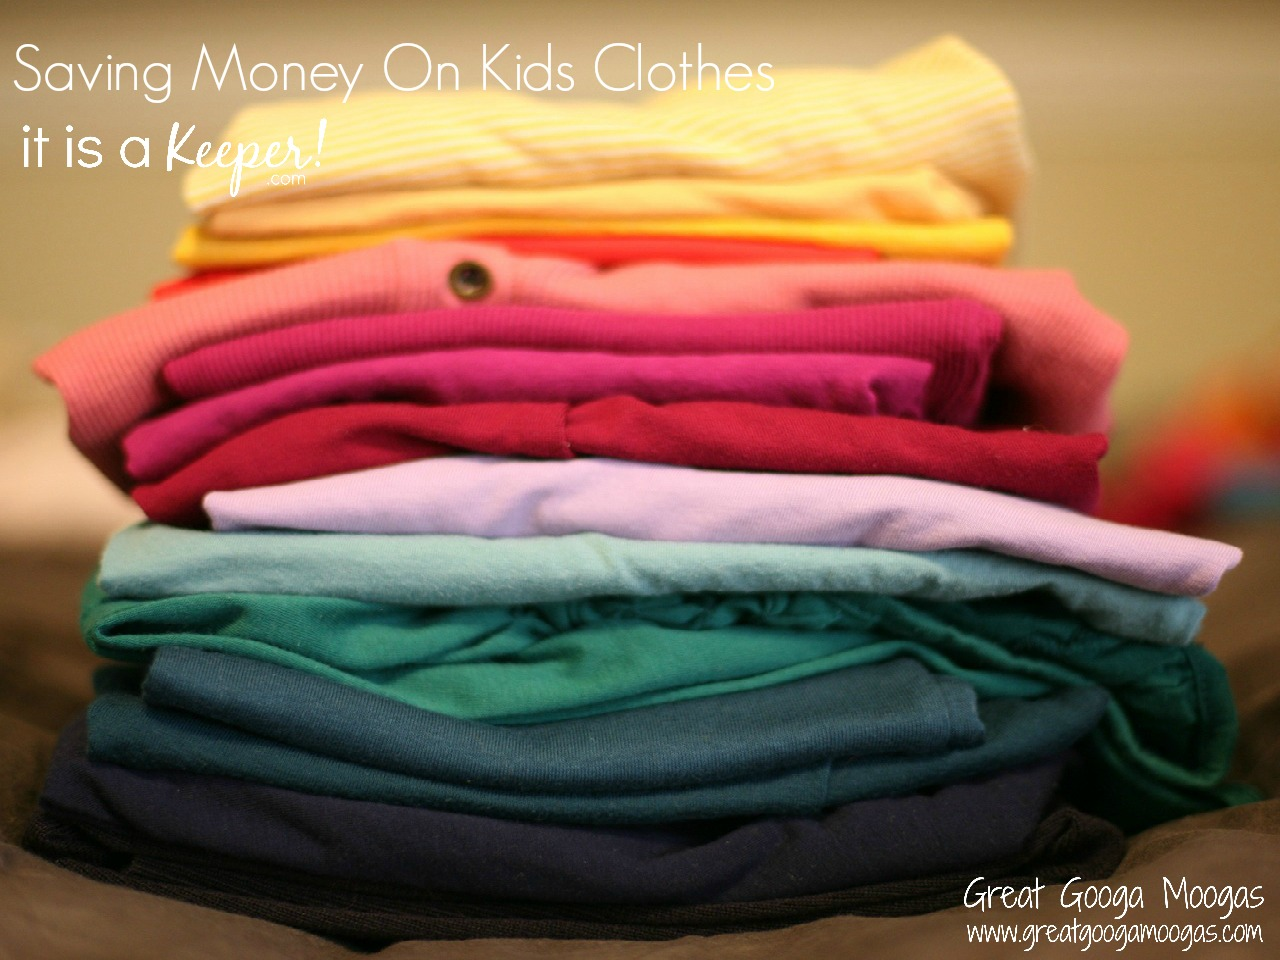 Saving Money on Kids Clothes - these tips provide some easy ways to save money